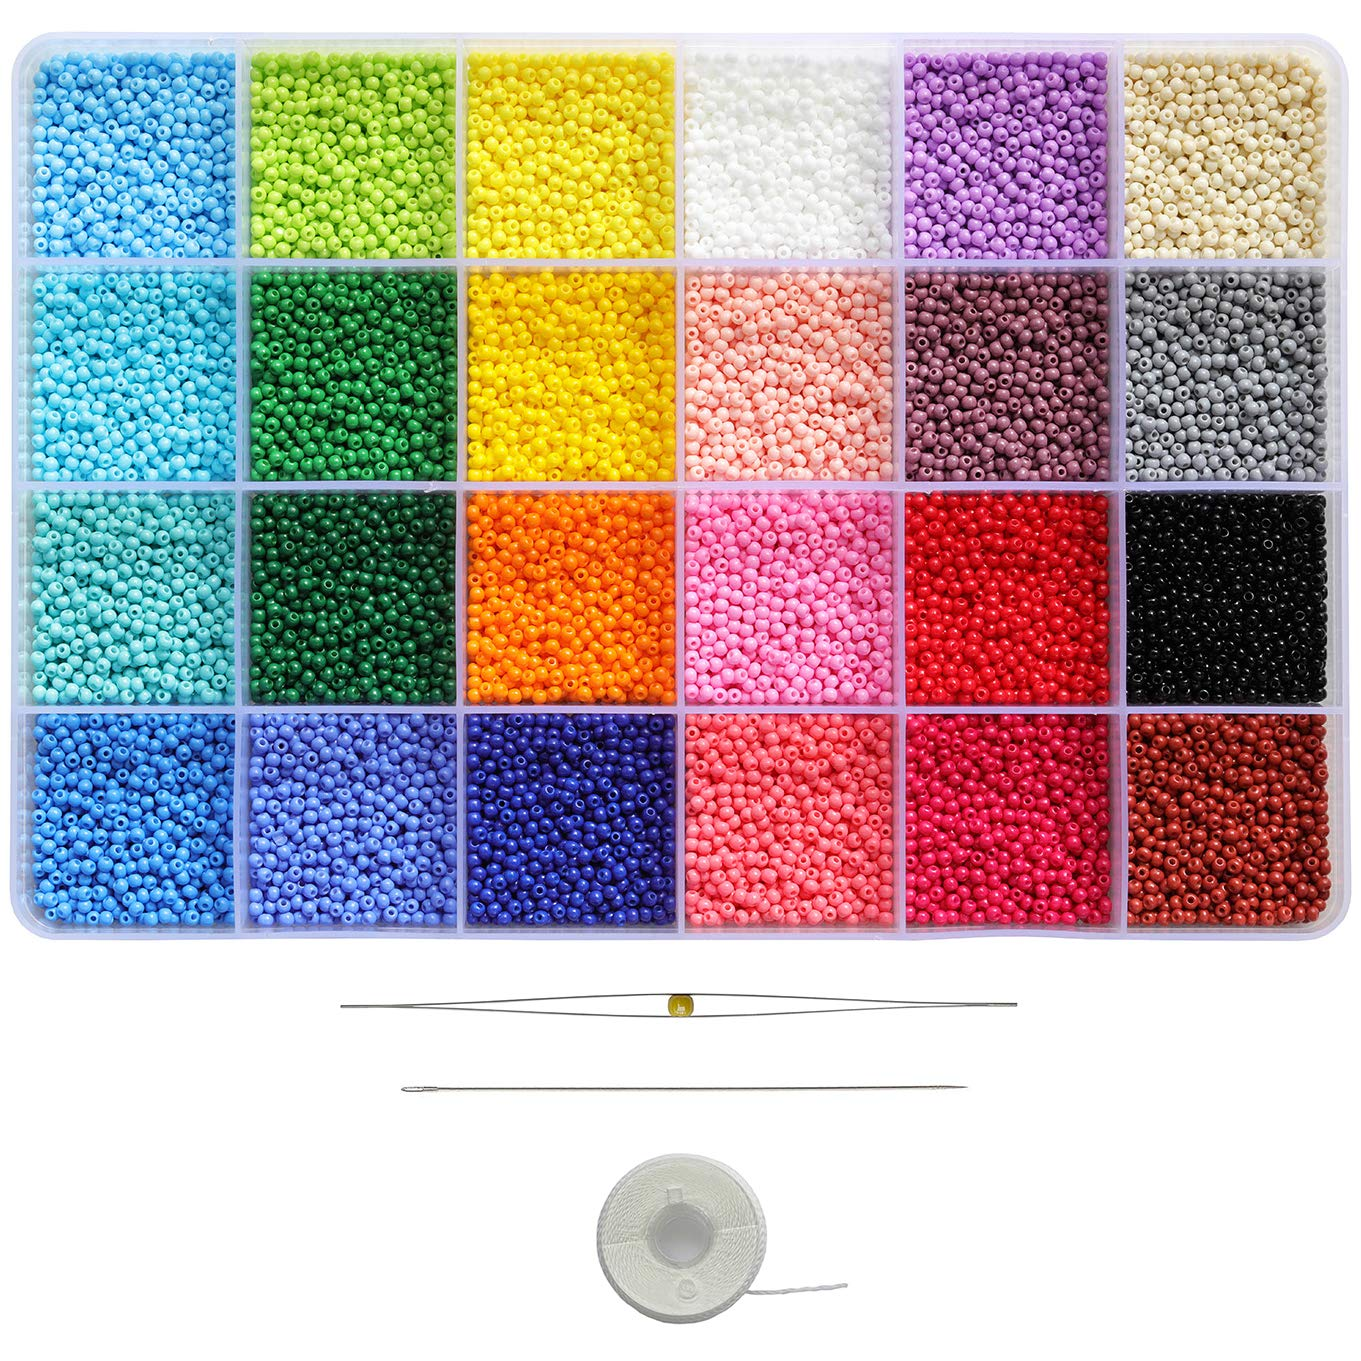 BALABEAD Size Almost Uniform Glass Seed Beads About 20000pcs Opaque Matte Colors Seed Beads 12/0 Glass Craft Beads 2mm Seed Beads for Jewelry Making, Hole 0.6mm(About 850pcs/Color, 24 Colors)